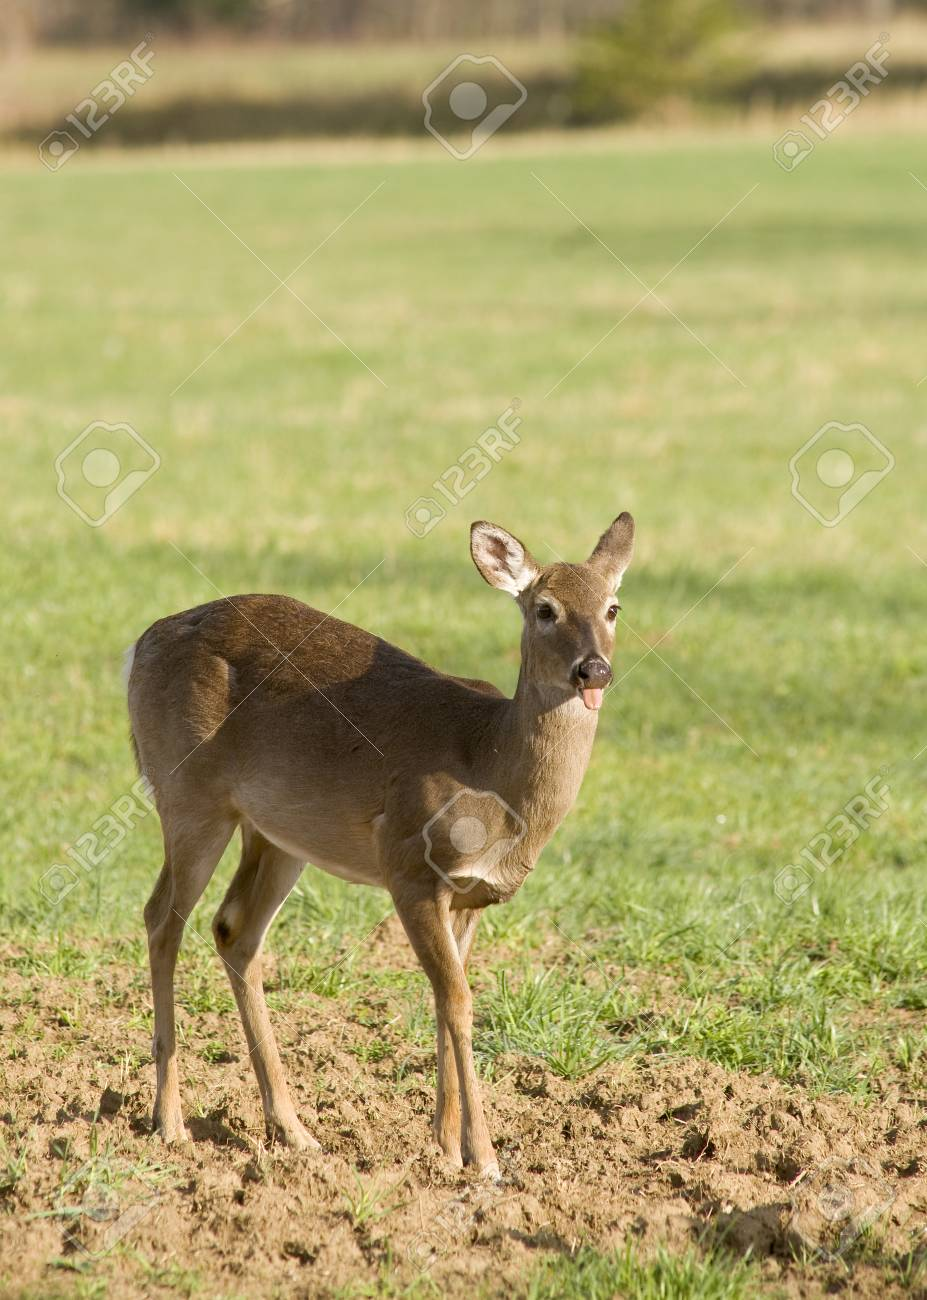 A White Tailed Deer (Odocoileus virginianus) in a field Stock Photo - 19254998